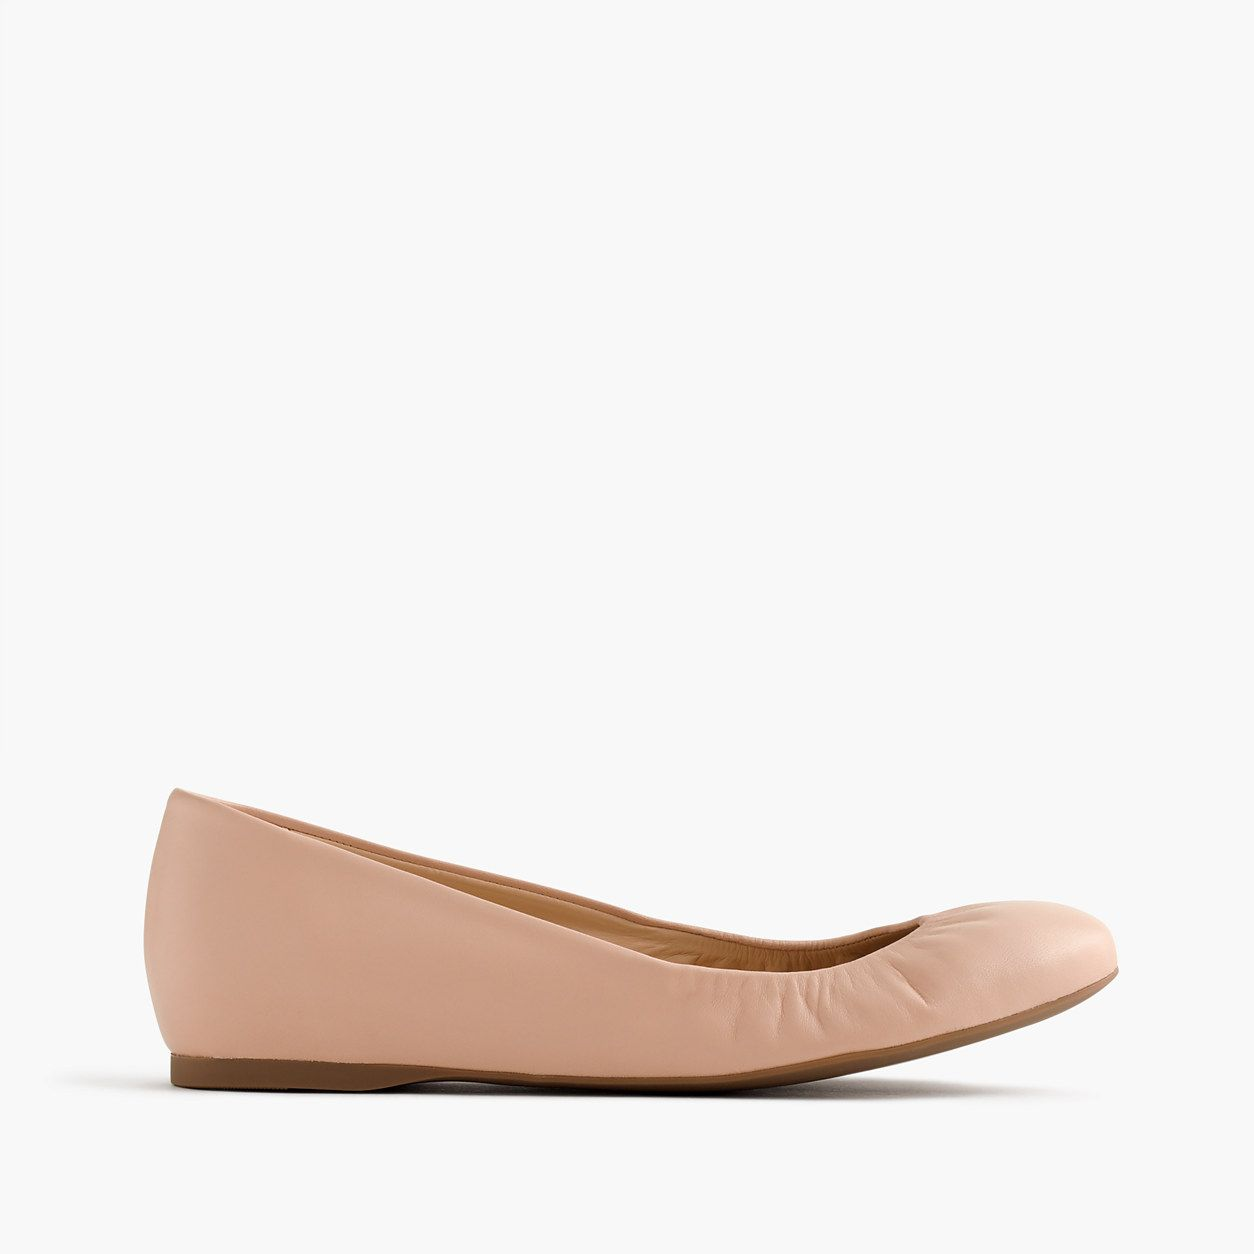 One of our most popular ballet flats